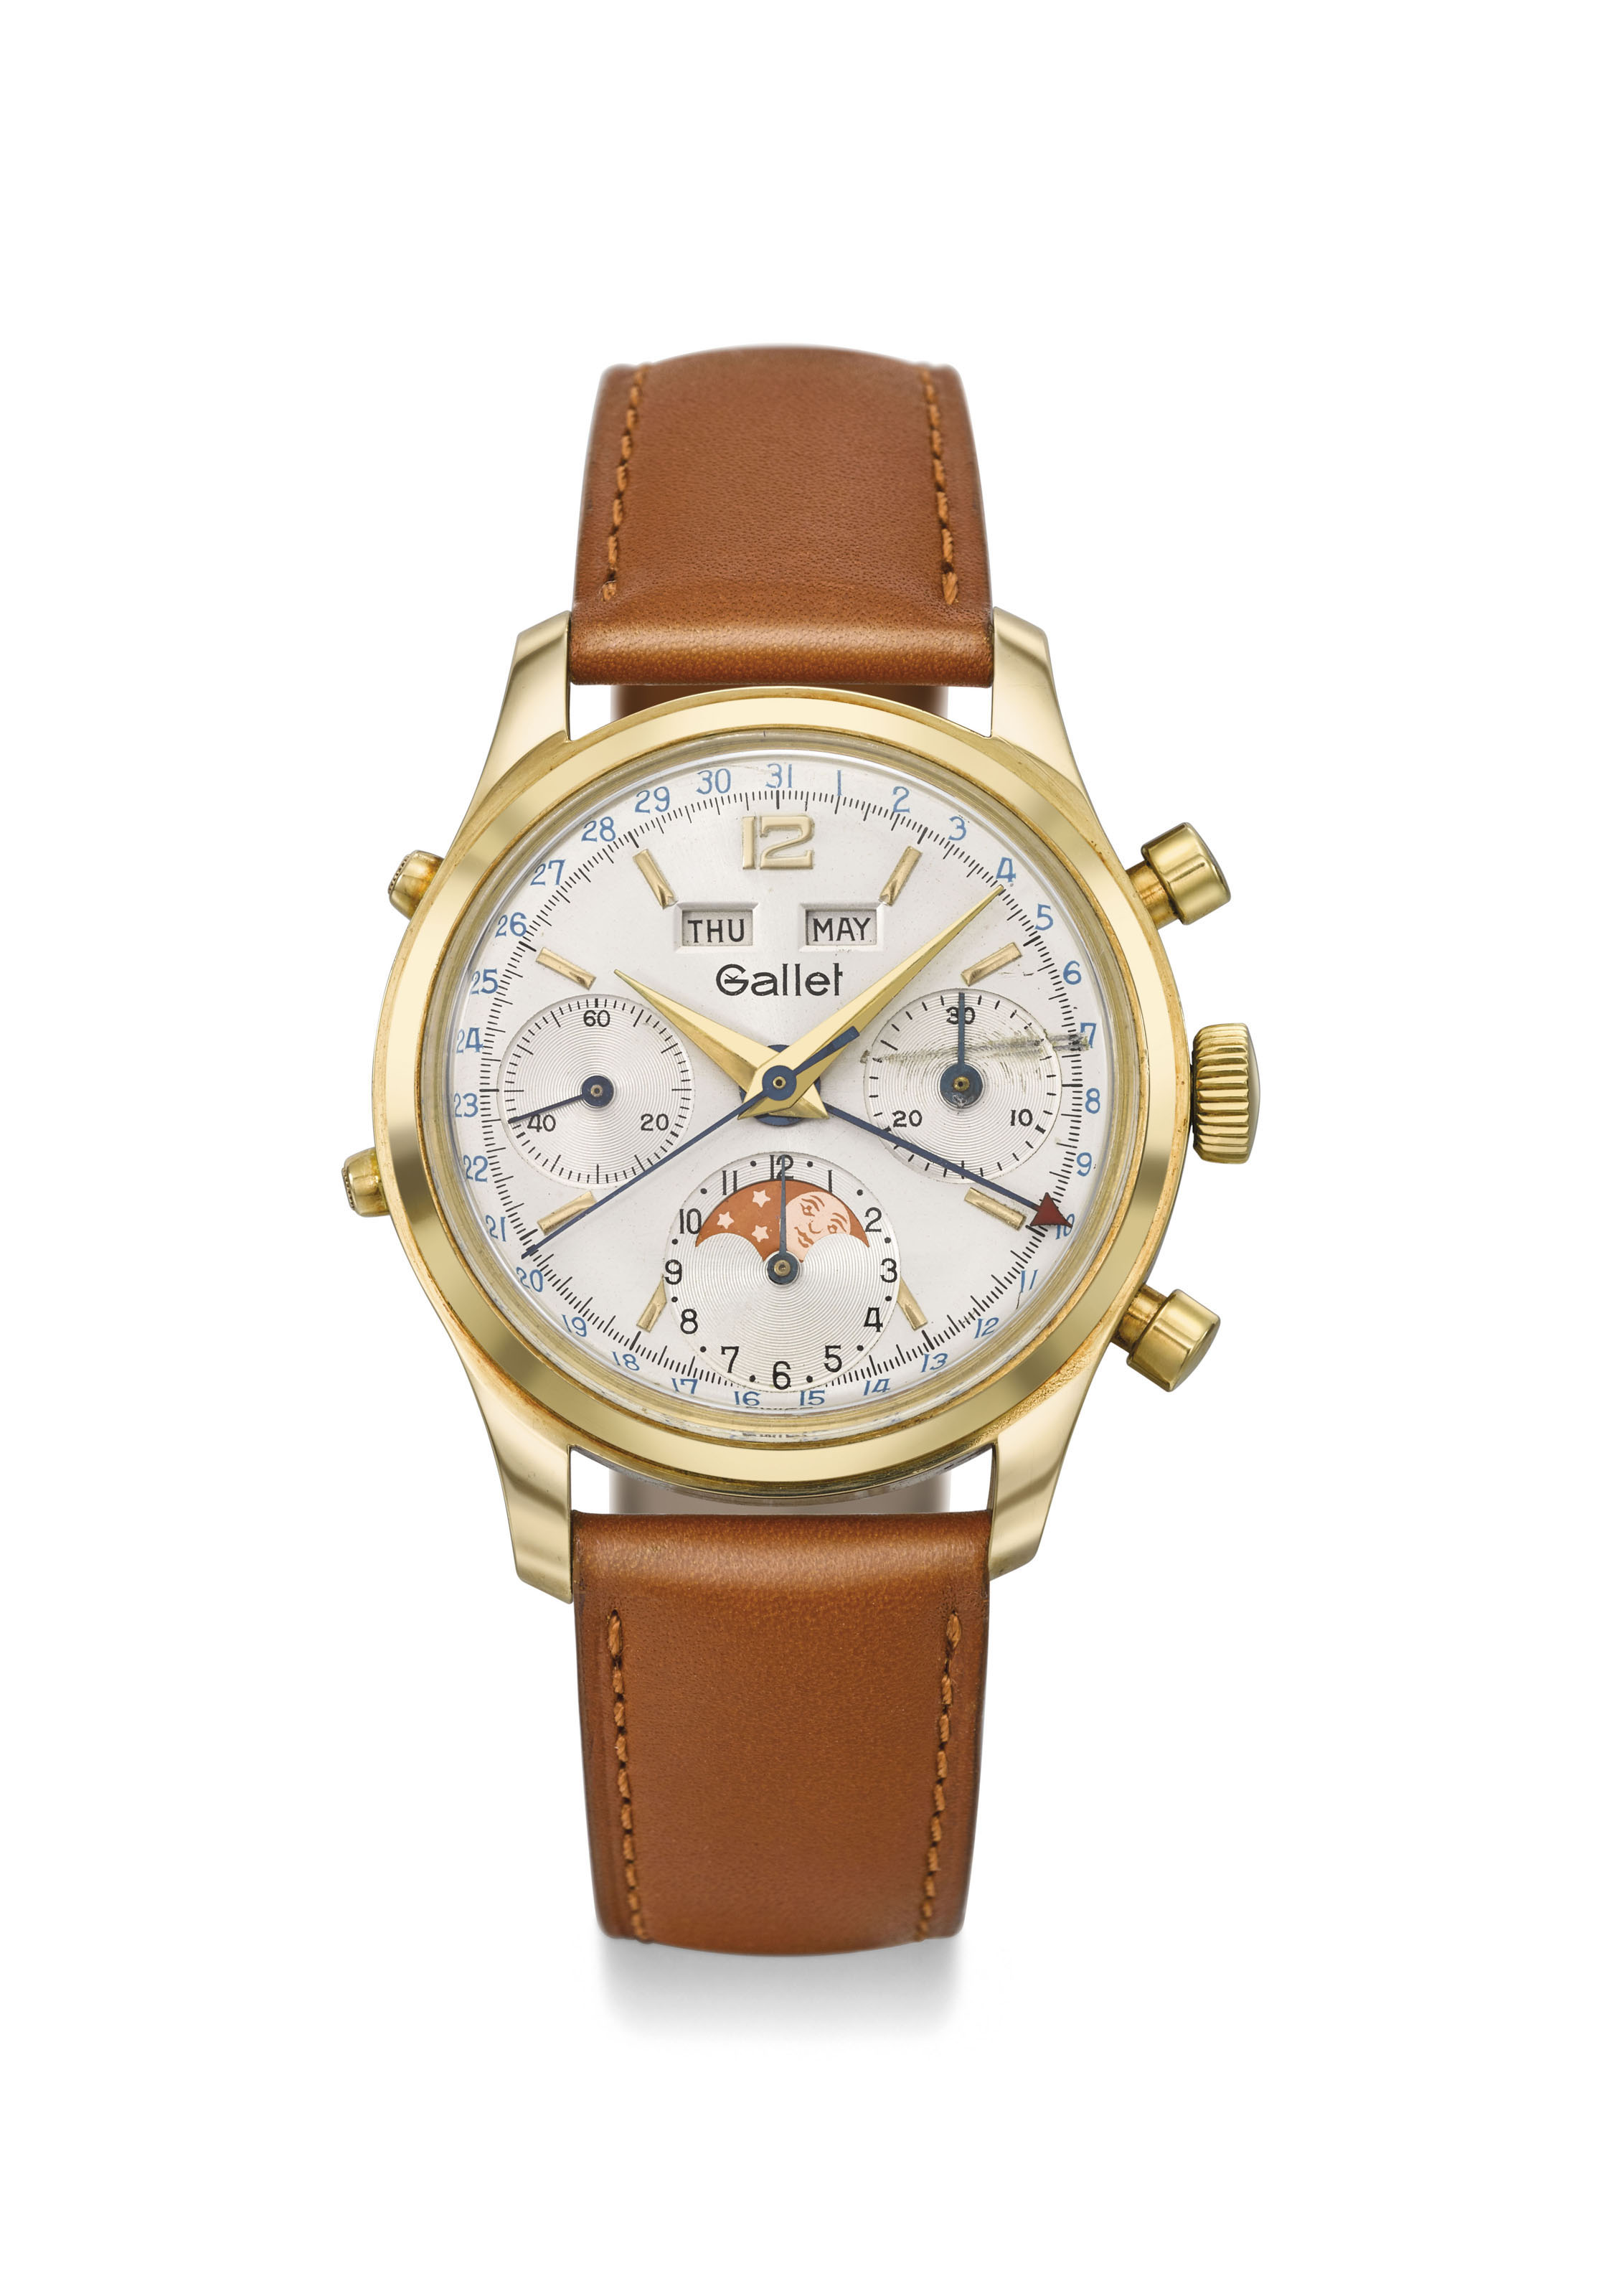 GALLET. A RARE AND UNUSUAL 14K GOLD TRIPLE DATE CHRONOGRAPH WRISTWATCH WITH MOON PHASES